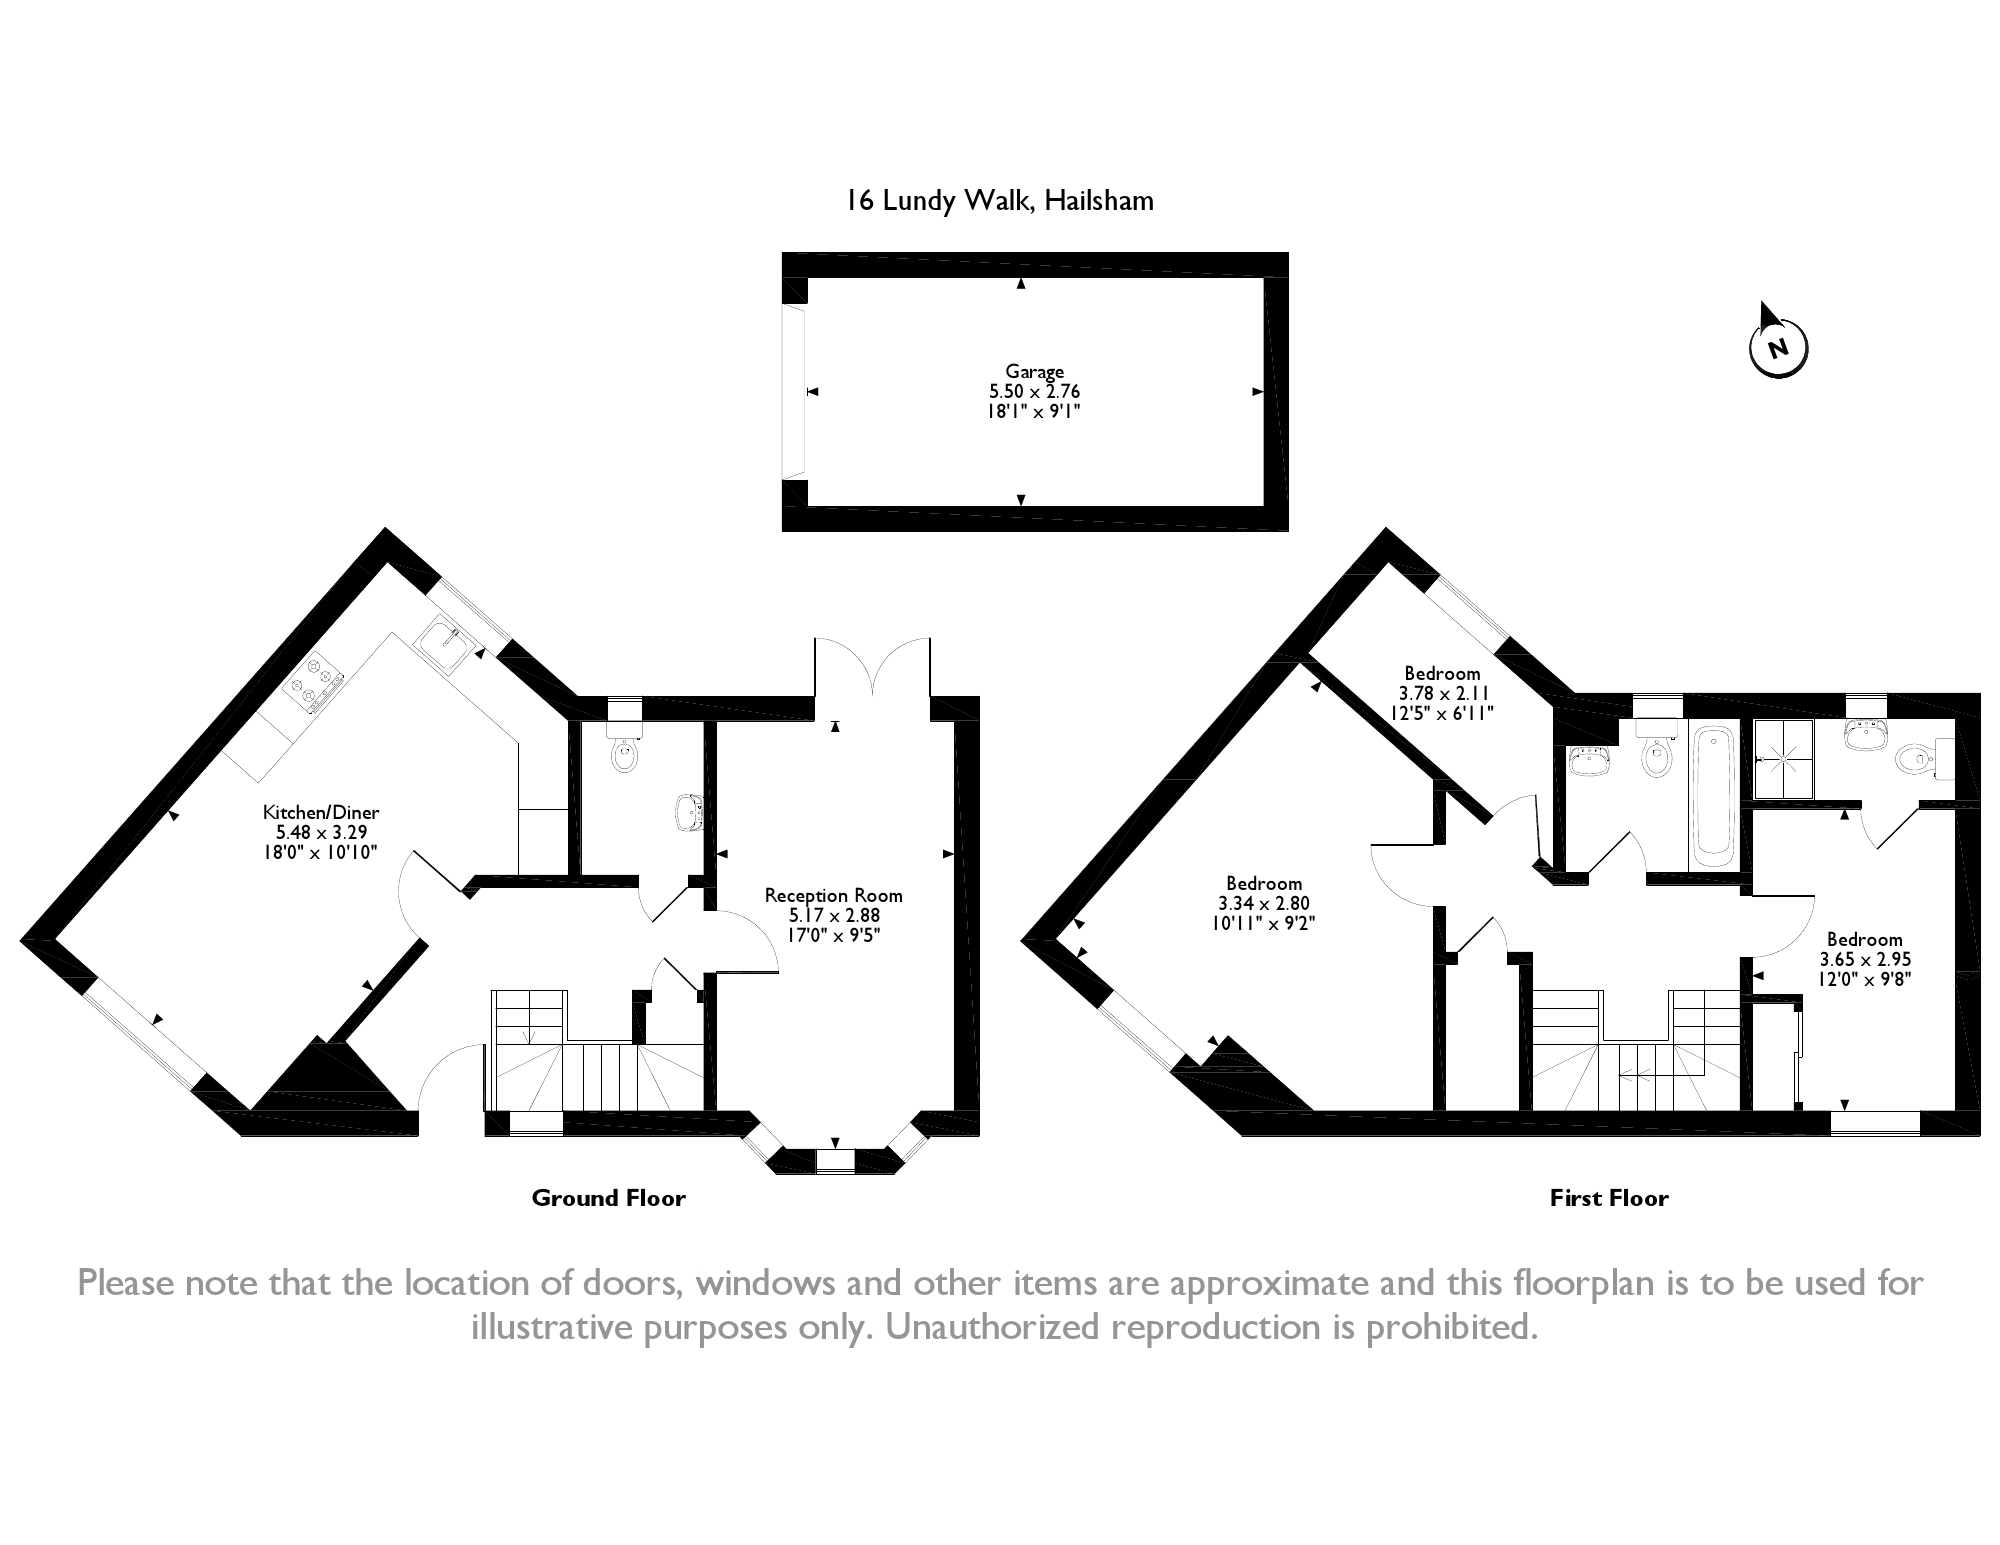 Lundy Walk, Hailsham, BN27 floor plan